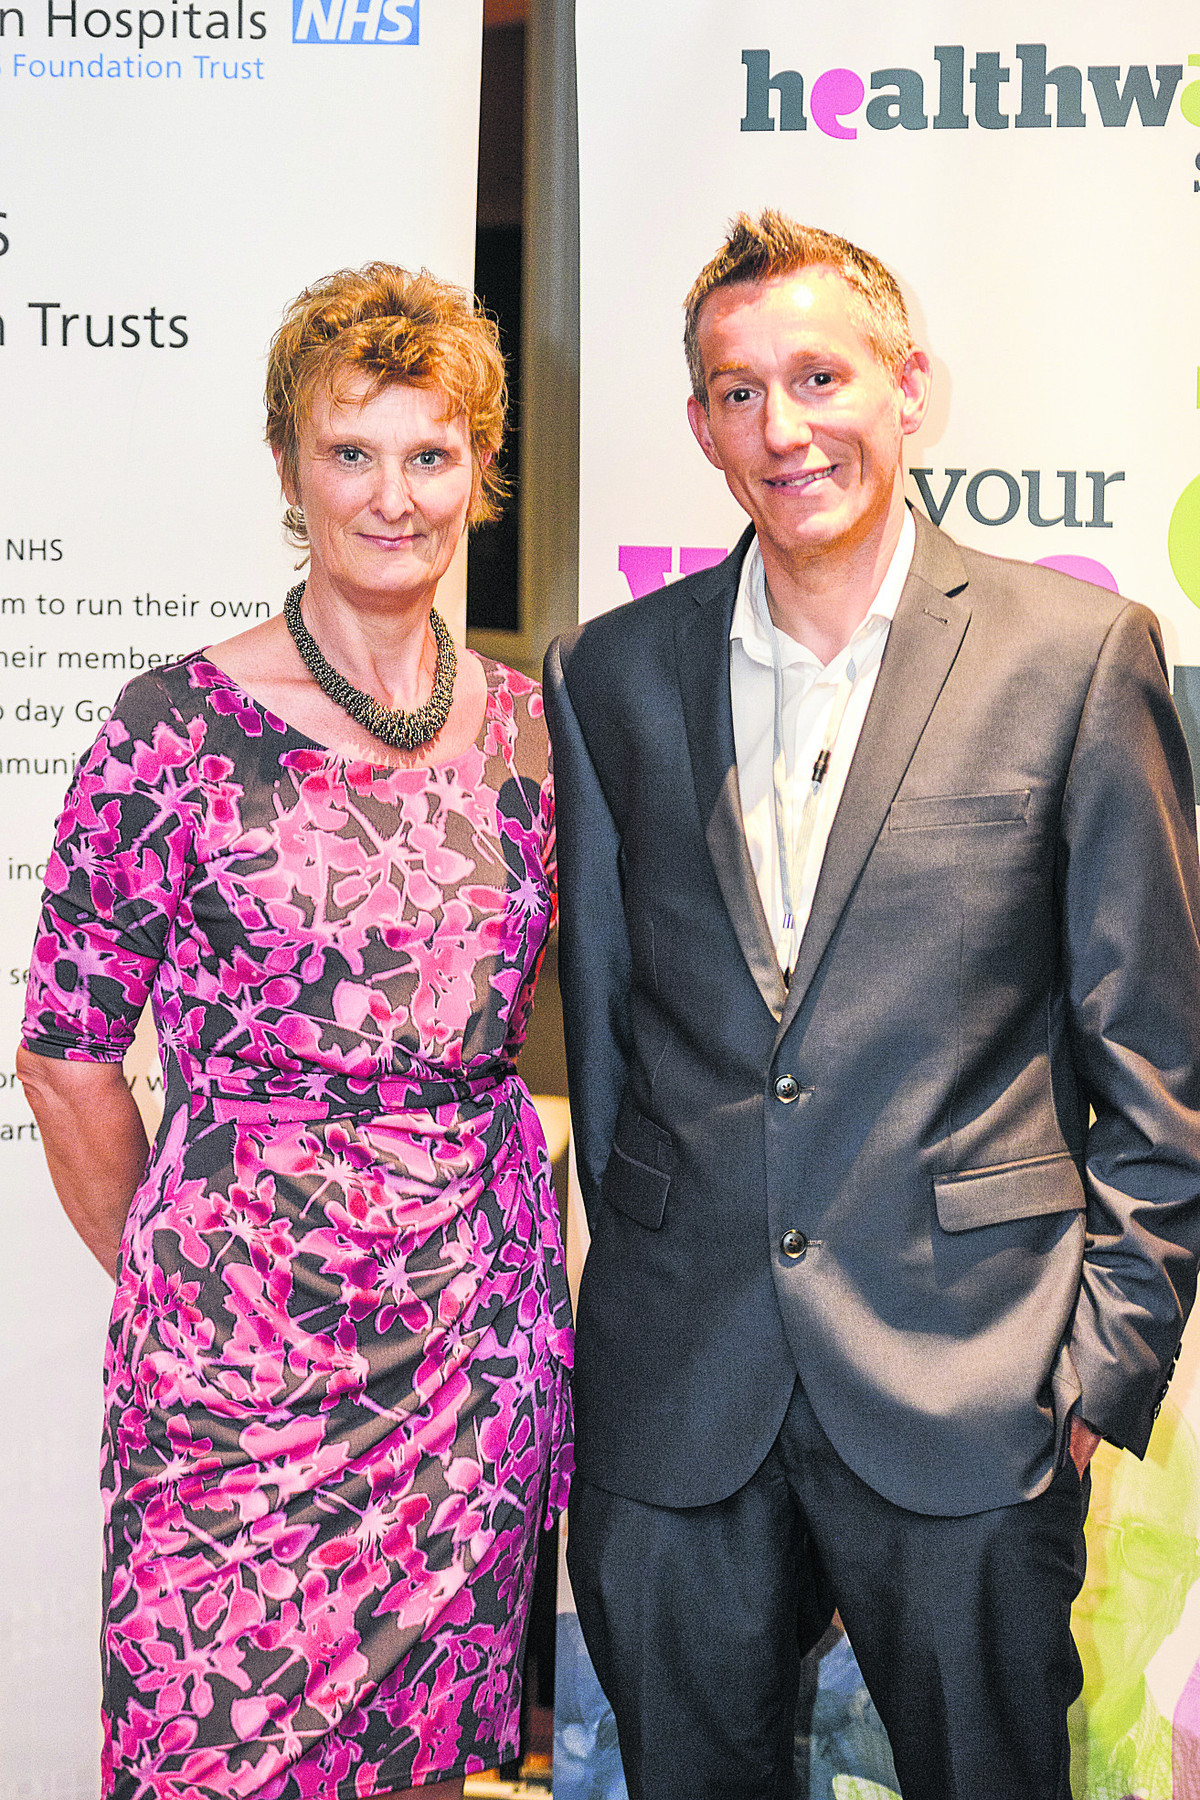 Spotlight event on the Great Western Hospital at the De vere Hotel. Pictured are Hilary Walker, chief nurse GWH NHS foundation trust, and Peter Rowe, manager Healthwatch Swindon